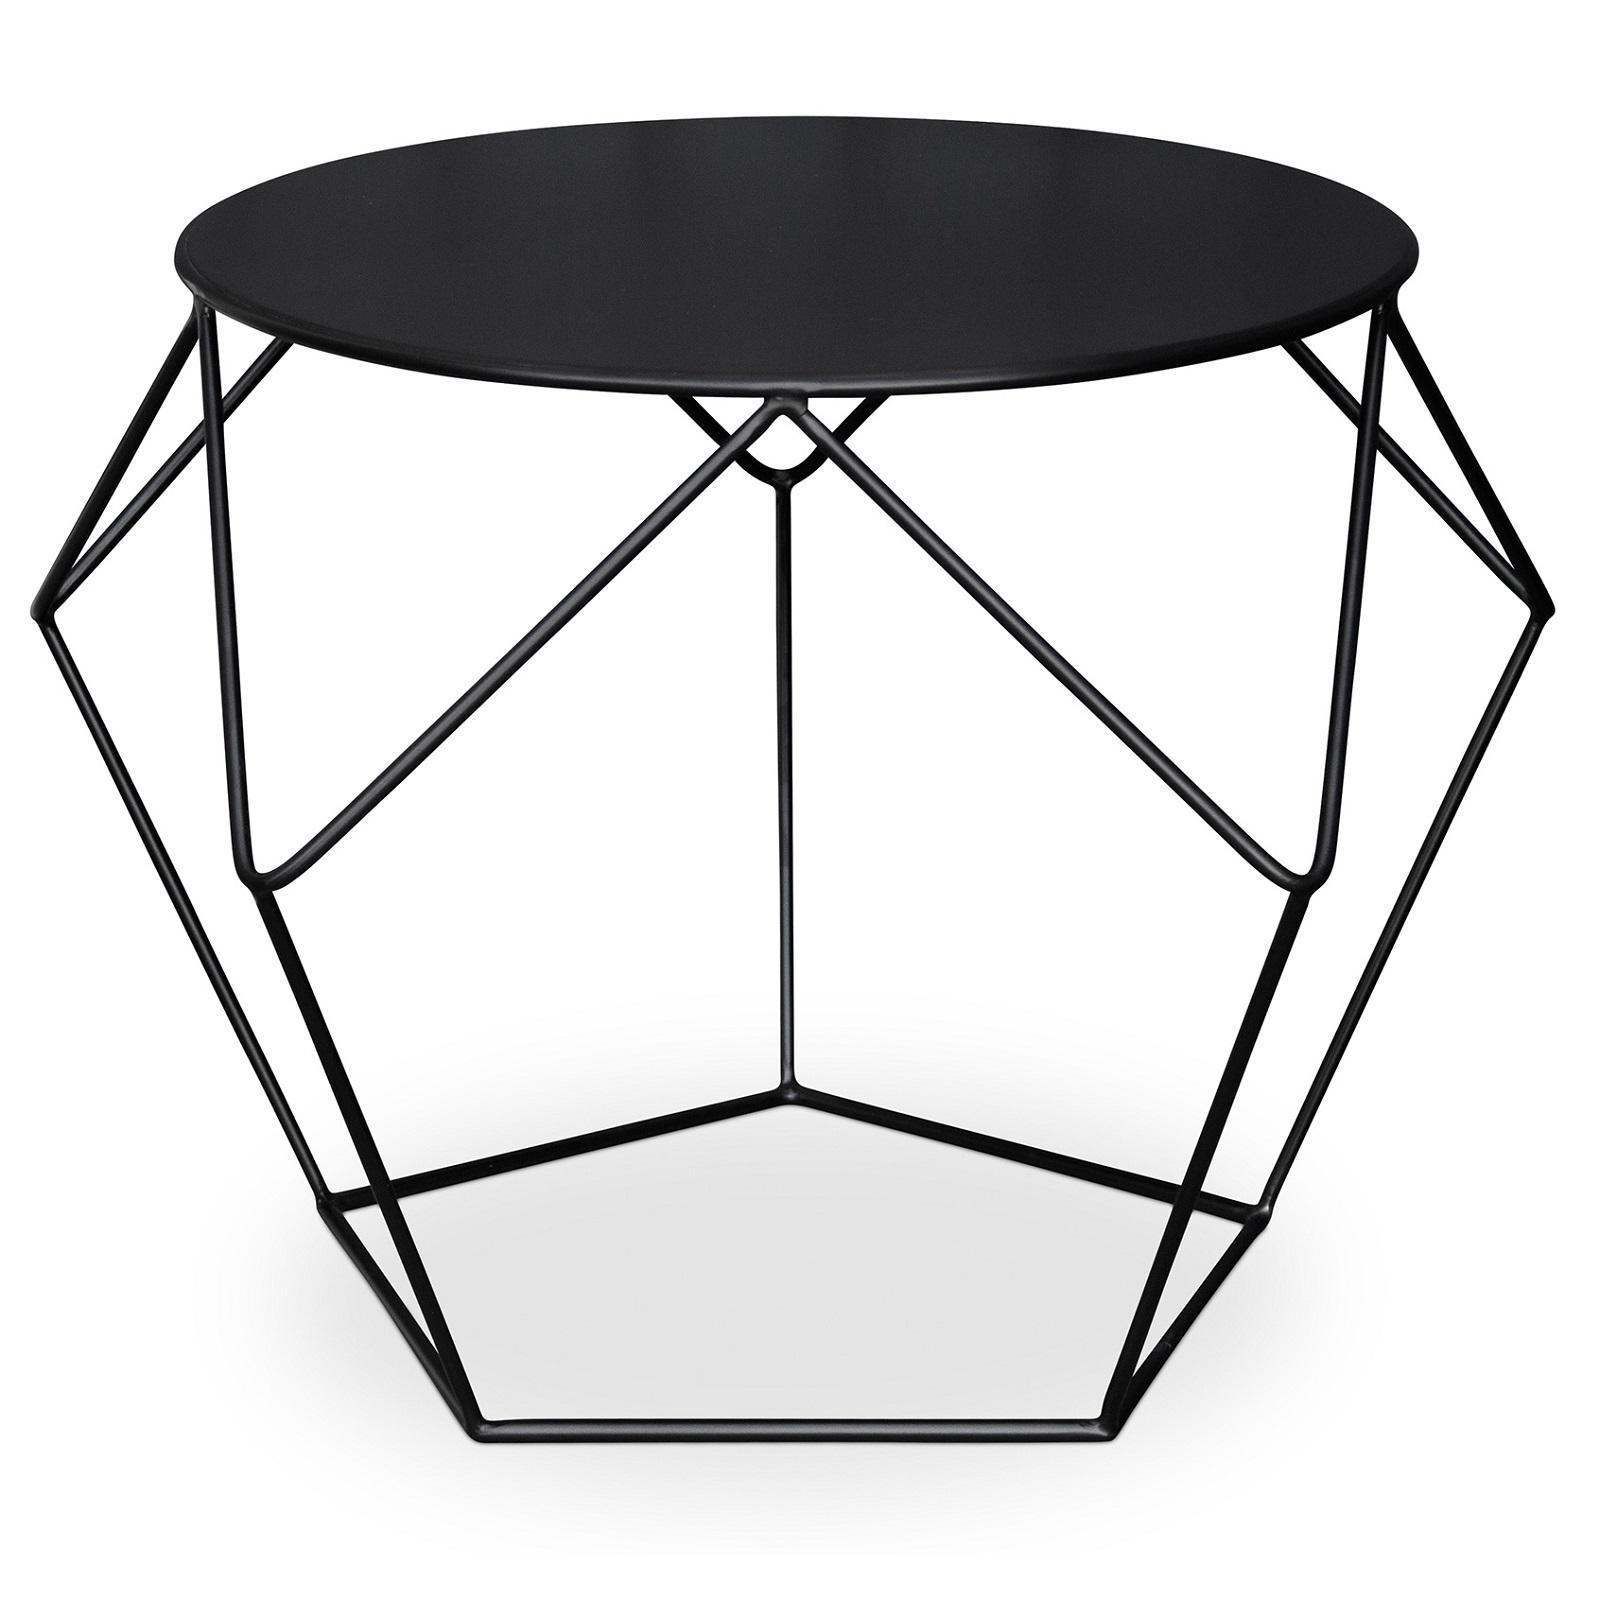 Table d'appoint metal